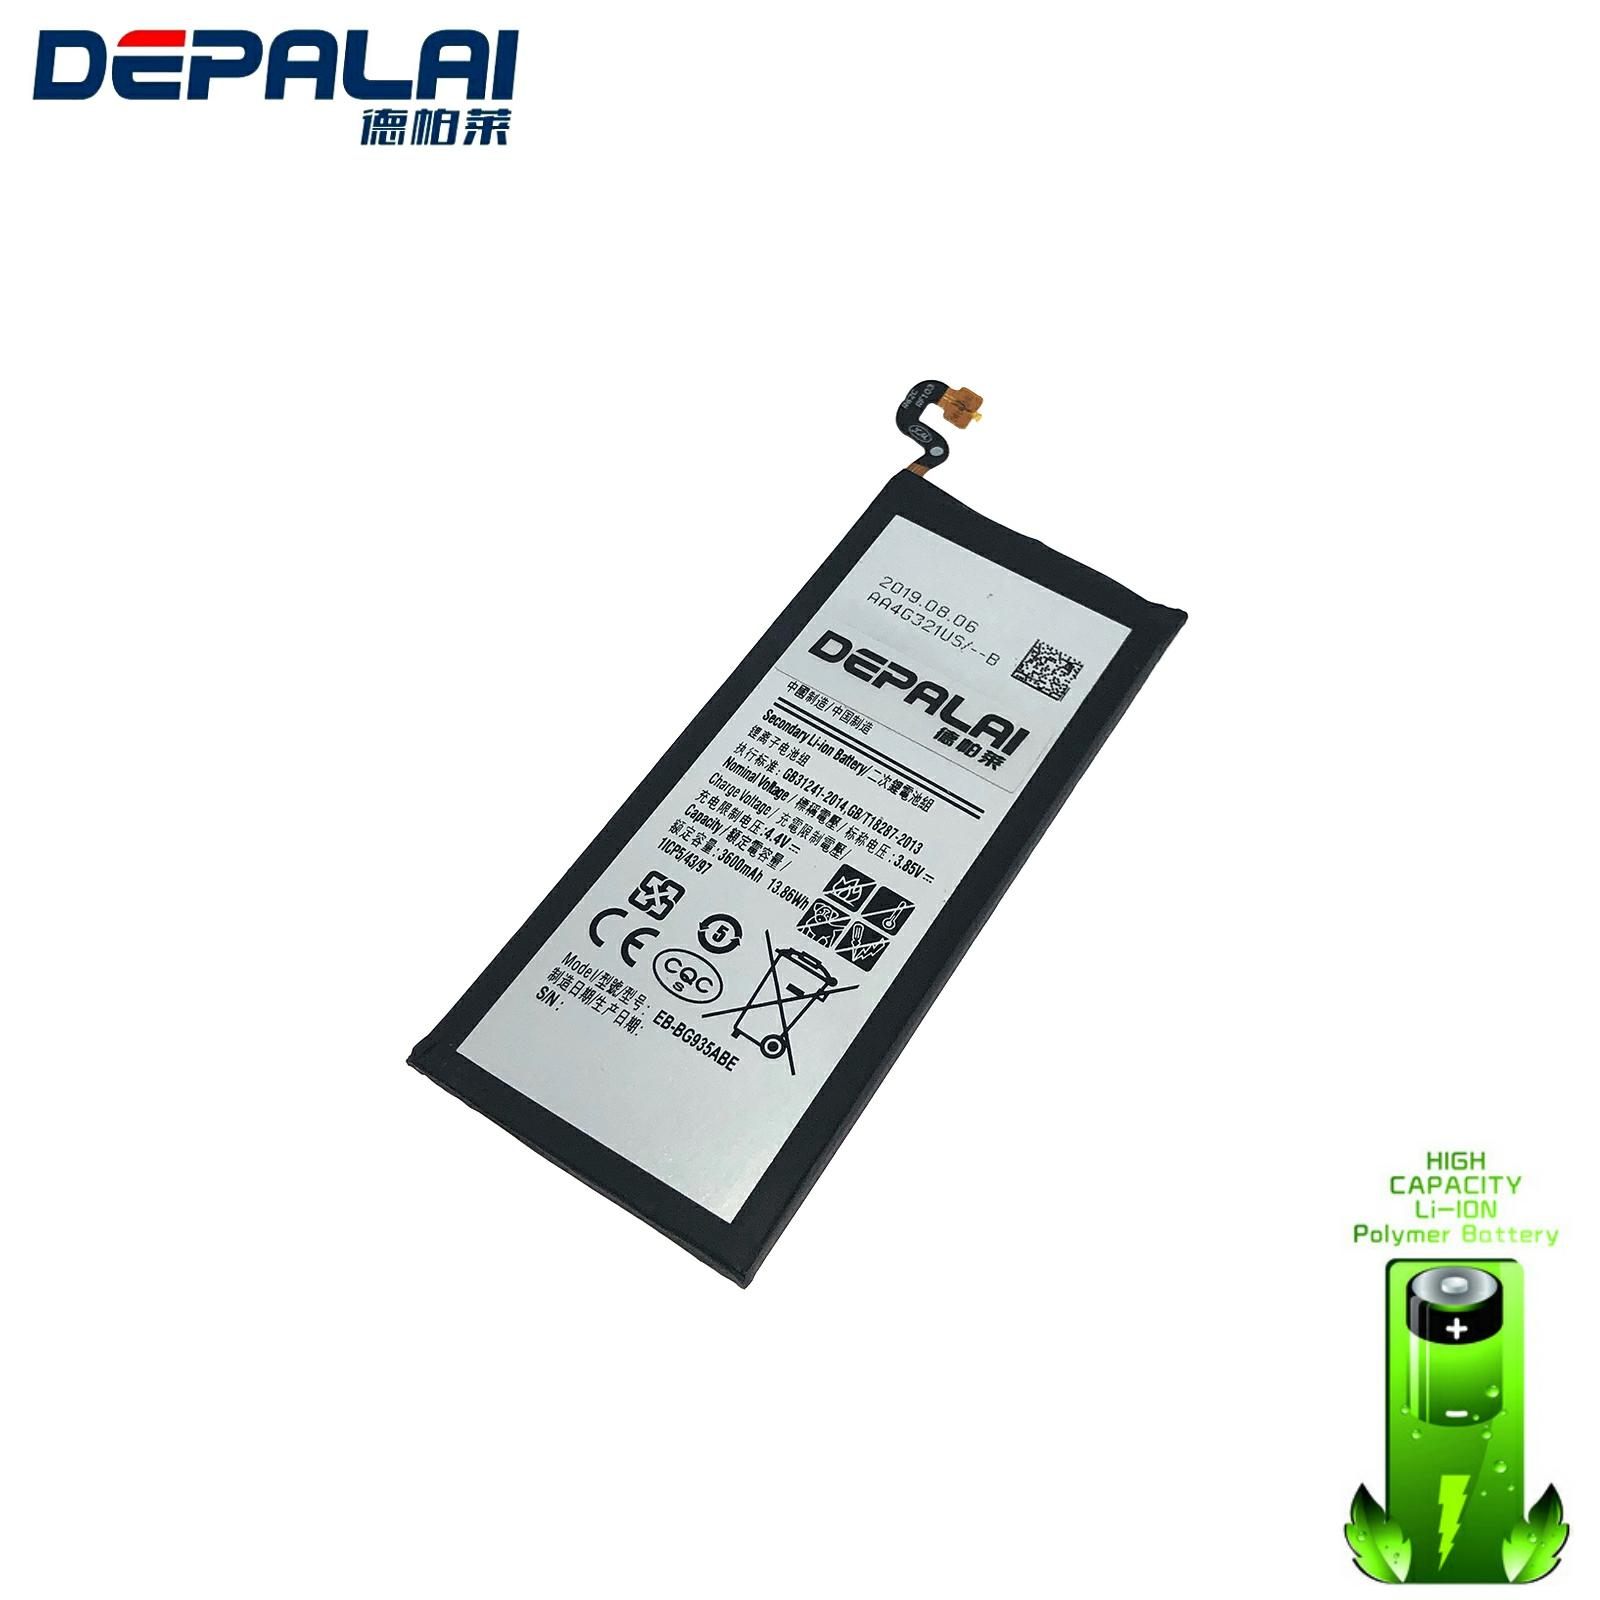 3600mAh Battery Replacement Battery EB-BG935ABE For Samsung Galaxy S7 Edge G9350 G935 G935F G935A G935V Battery S7edge